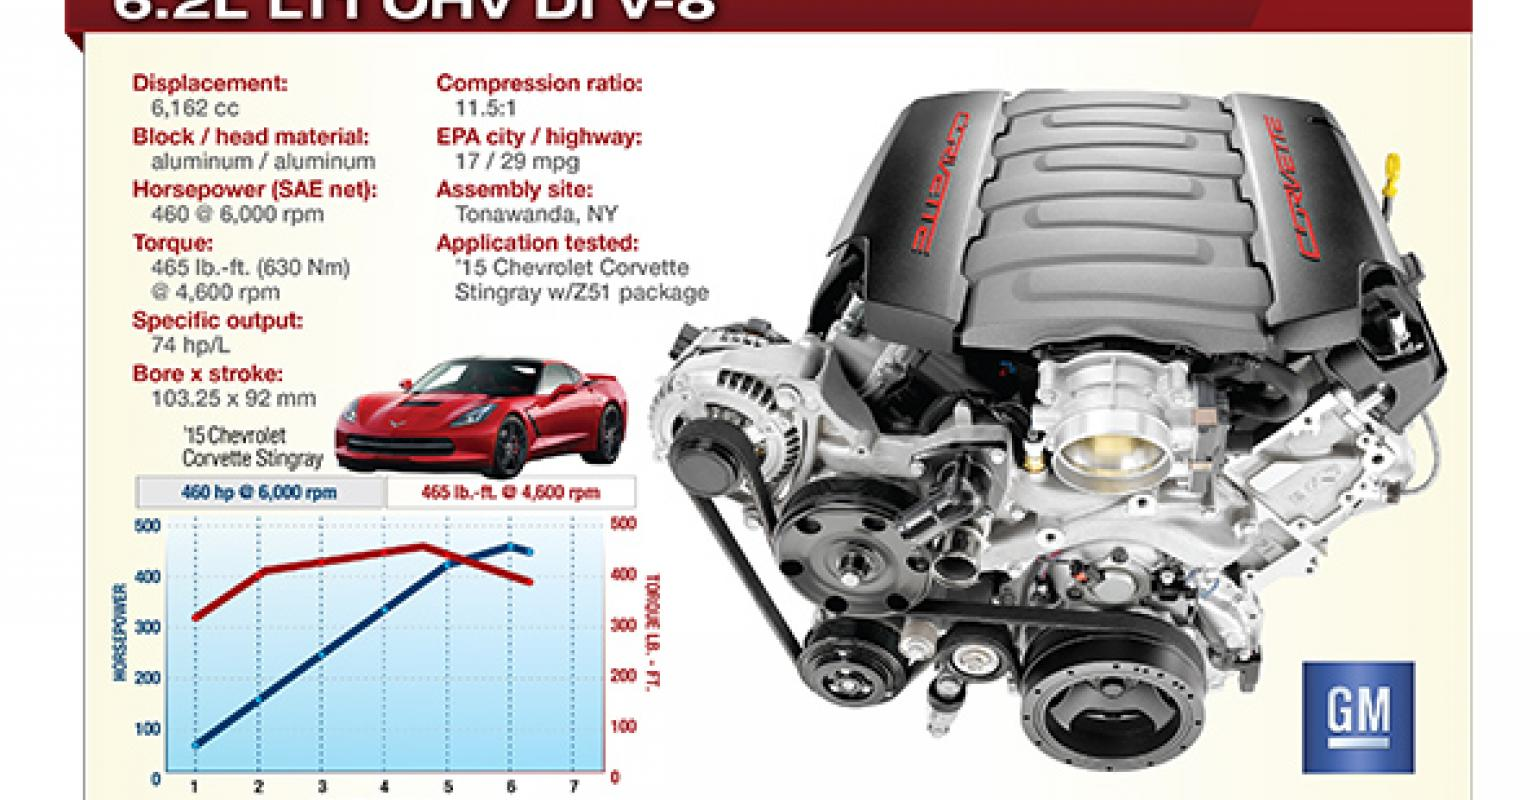 The OHV LT1 is much smaller and lighter than DOHC V8s with comparable output